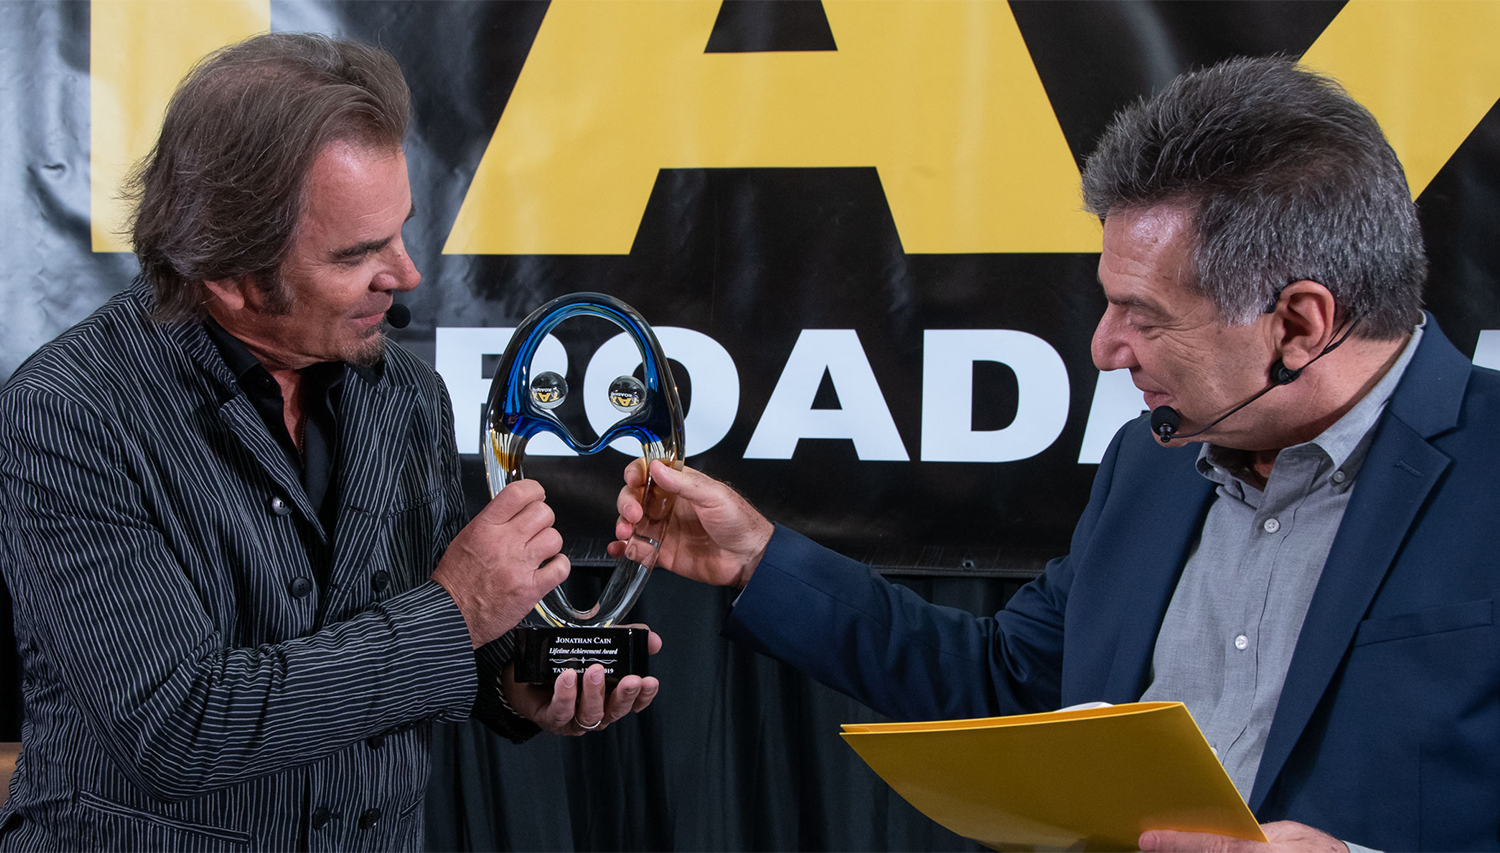 Jonathan Cain proudly holds up his Lifetime Achievement Award at the TAXI's Road Rally, while Michael Laskow congratulates him.